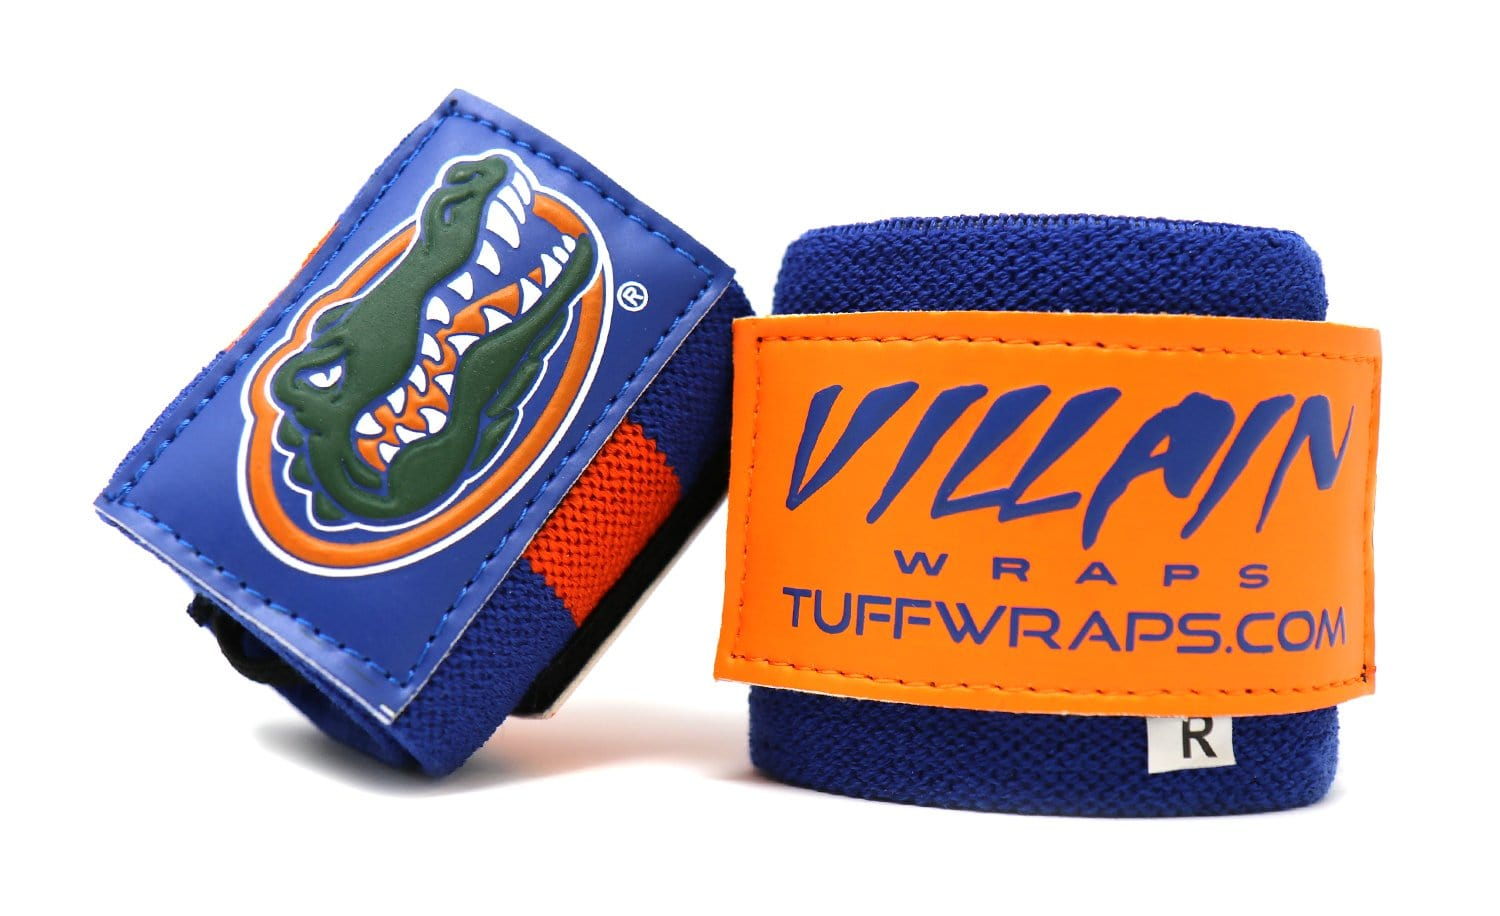 It's Official, first in the industry with NCAA Licensed Wrist Wraps!